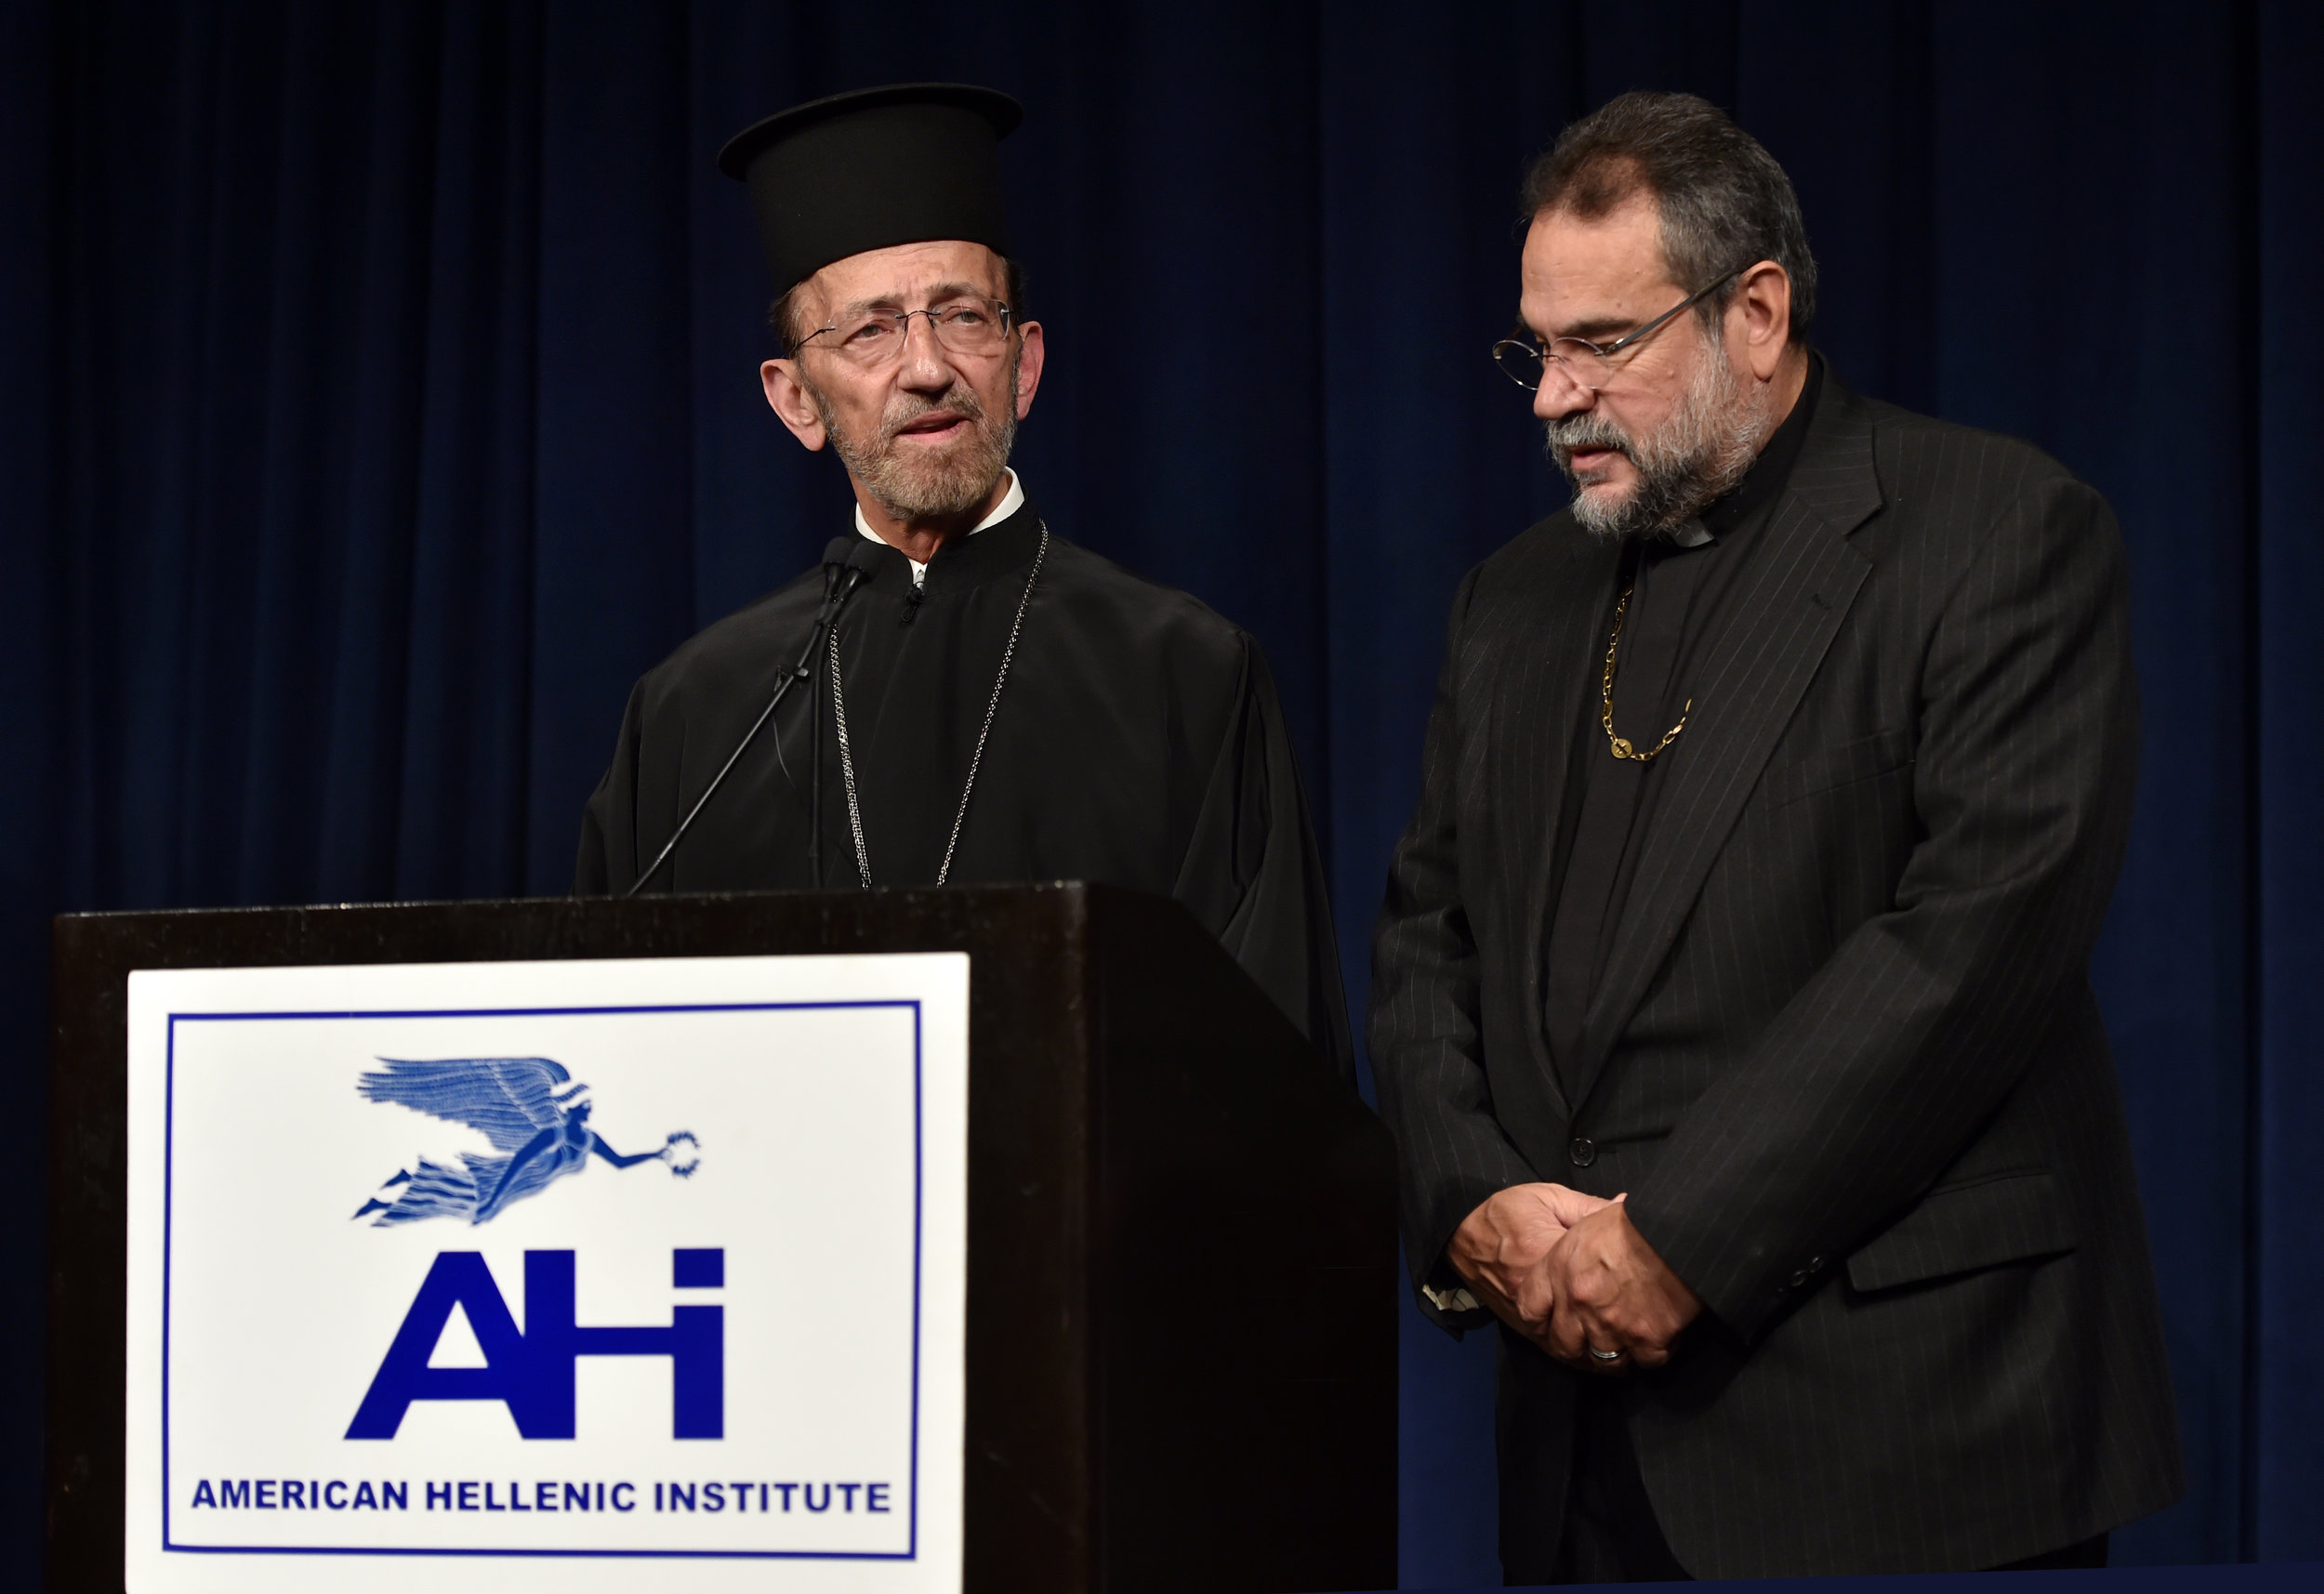 His Eminence Metropolitan Gerasimos of San Francisco (left) is assisted by Rev. Konstantinos Pavlakos in offering the invocation.